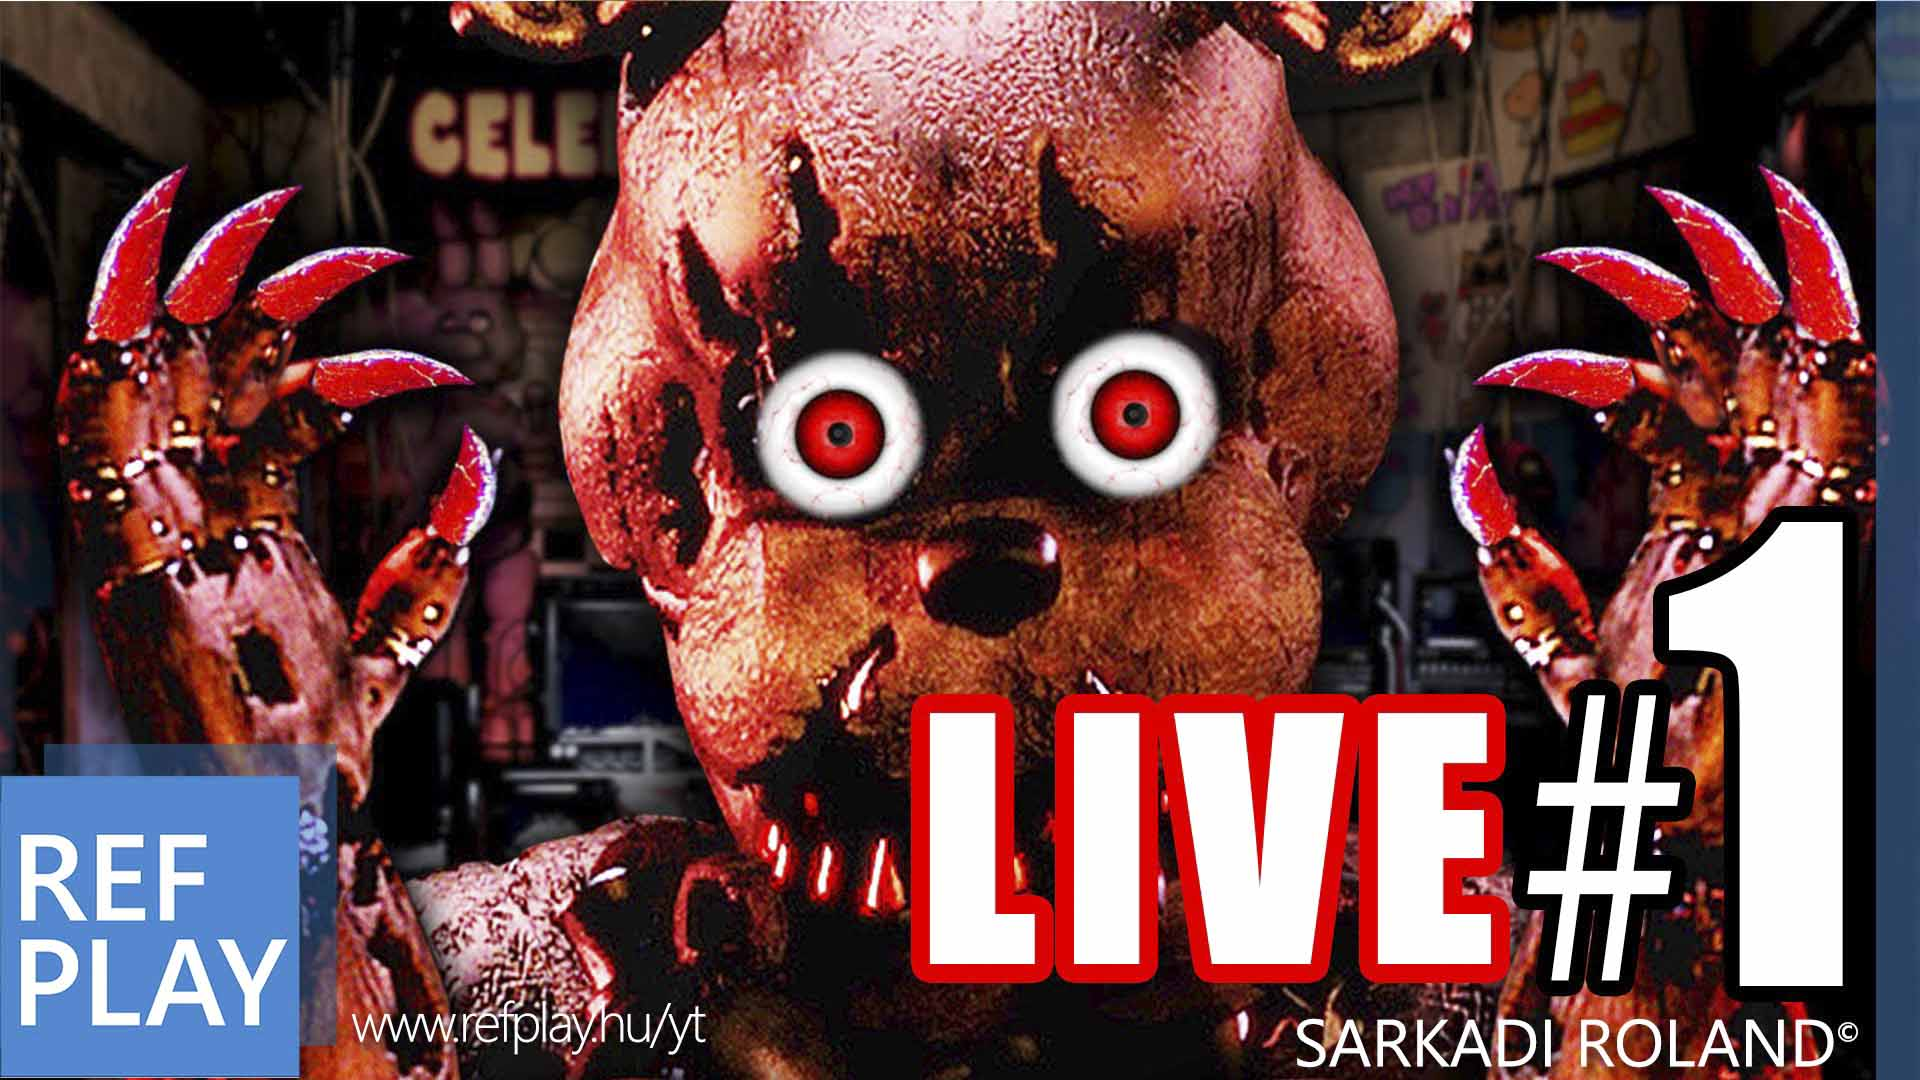 ESTI HORROR MESÉK! | Five Nights At Freddys 4 #1 LIVE RAGE | MAGYAR GAMEPLAY